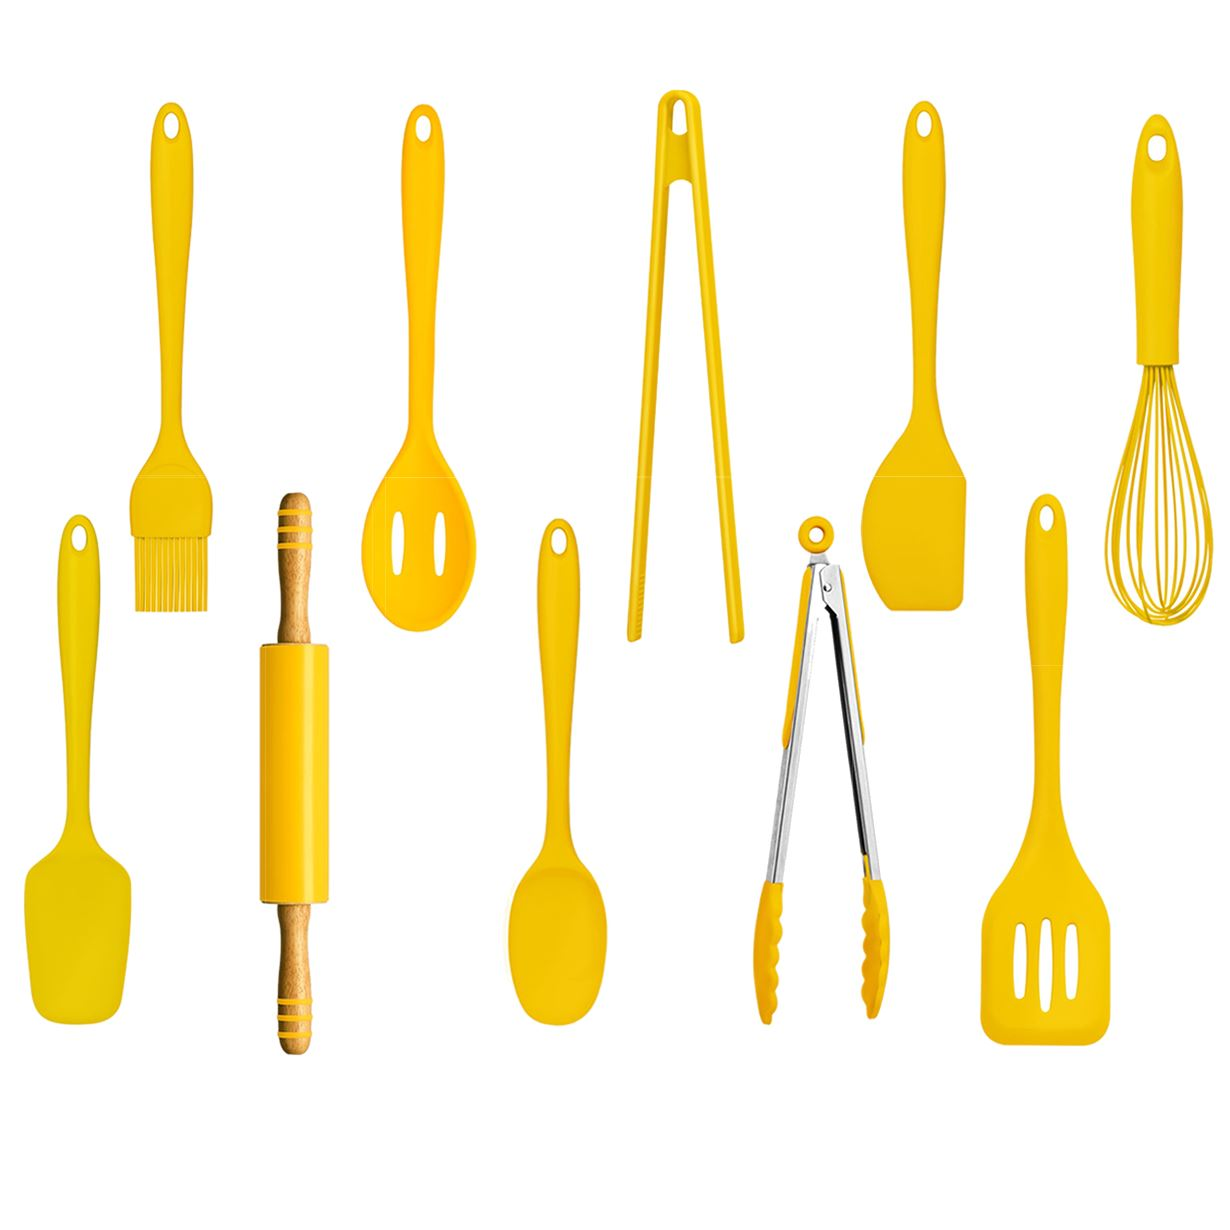 Zing Cooking Utensils | 10pc Kitchen Accessories Set | Heat ...